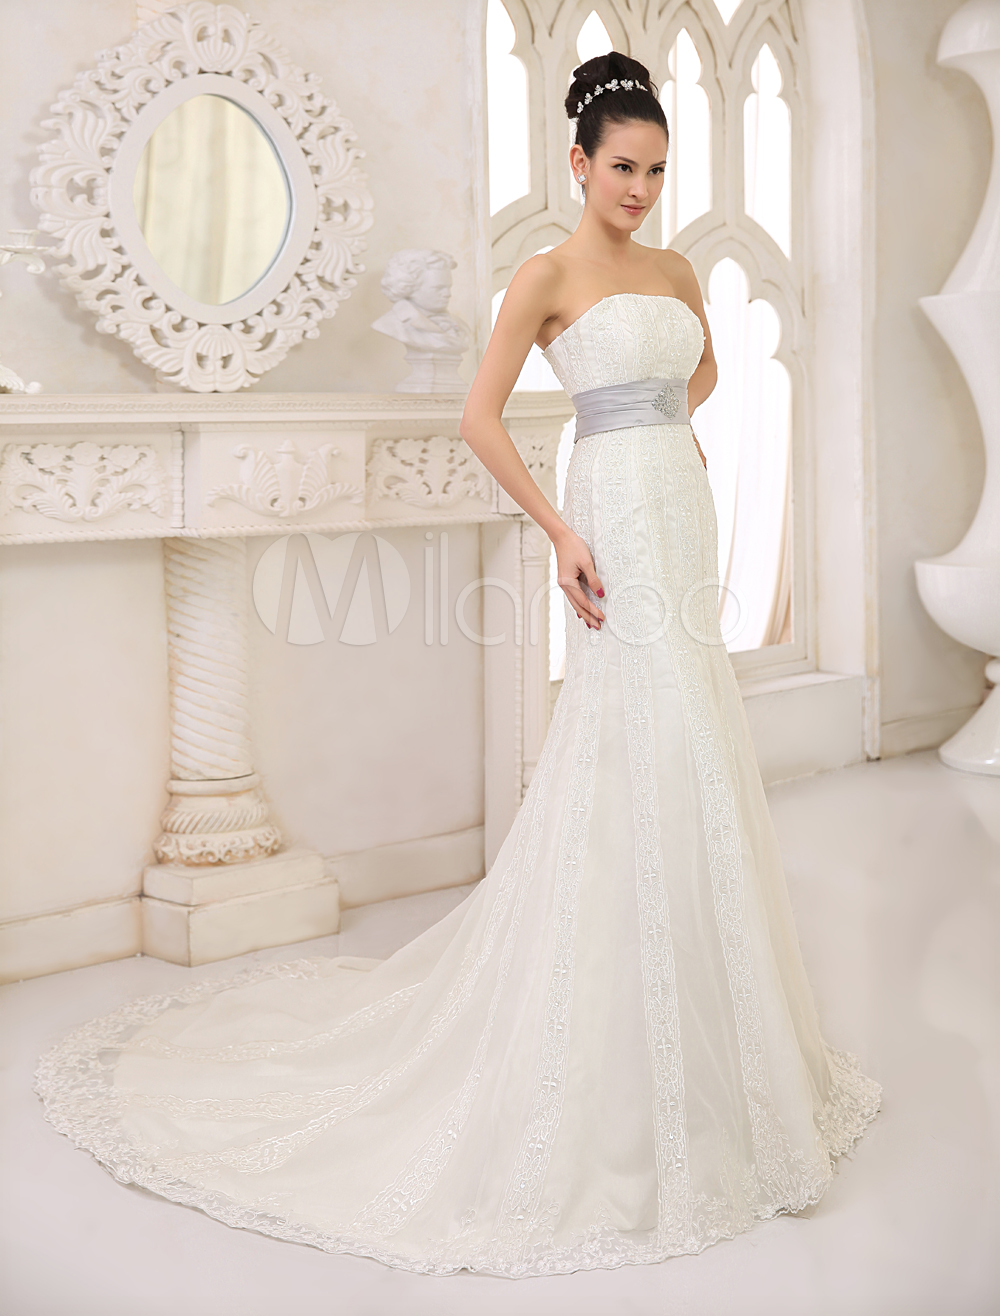 Court Train Ivory Wedding Dress For Bride with Strapless Sheath